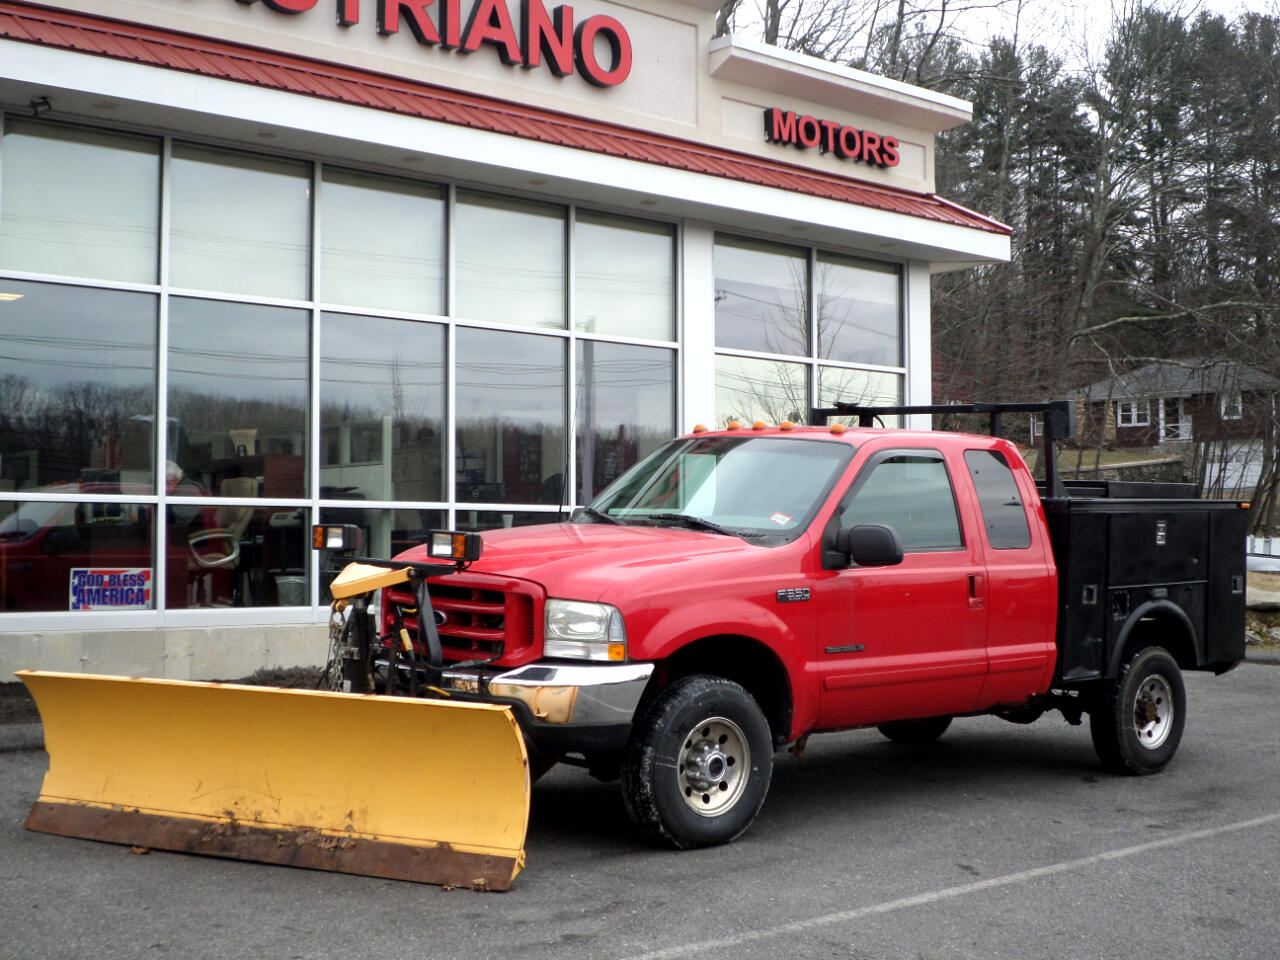 2003 Ford Super Duty F-350 SRW 7.3 POWERSTROKE DIESEL WITH FISHER MM2 PLOW